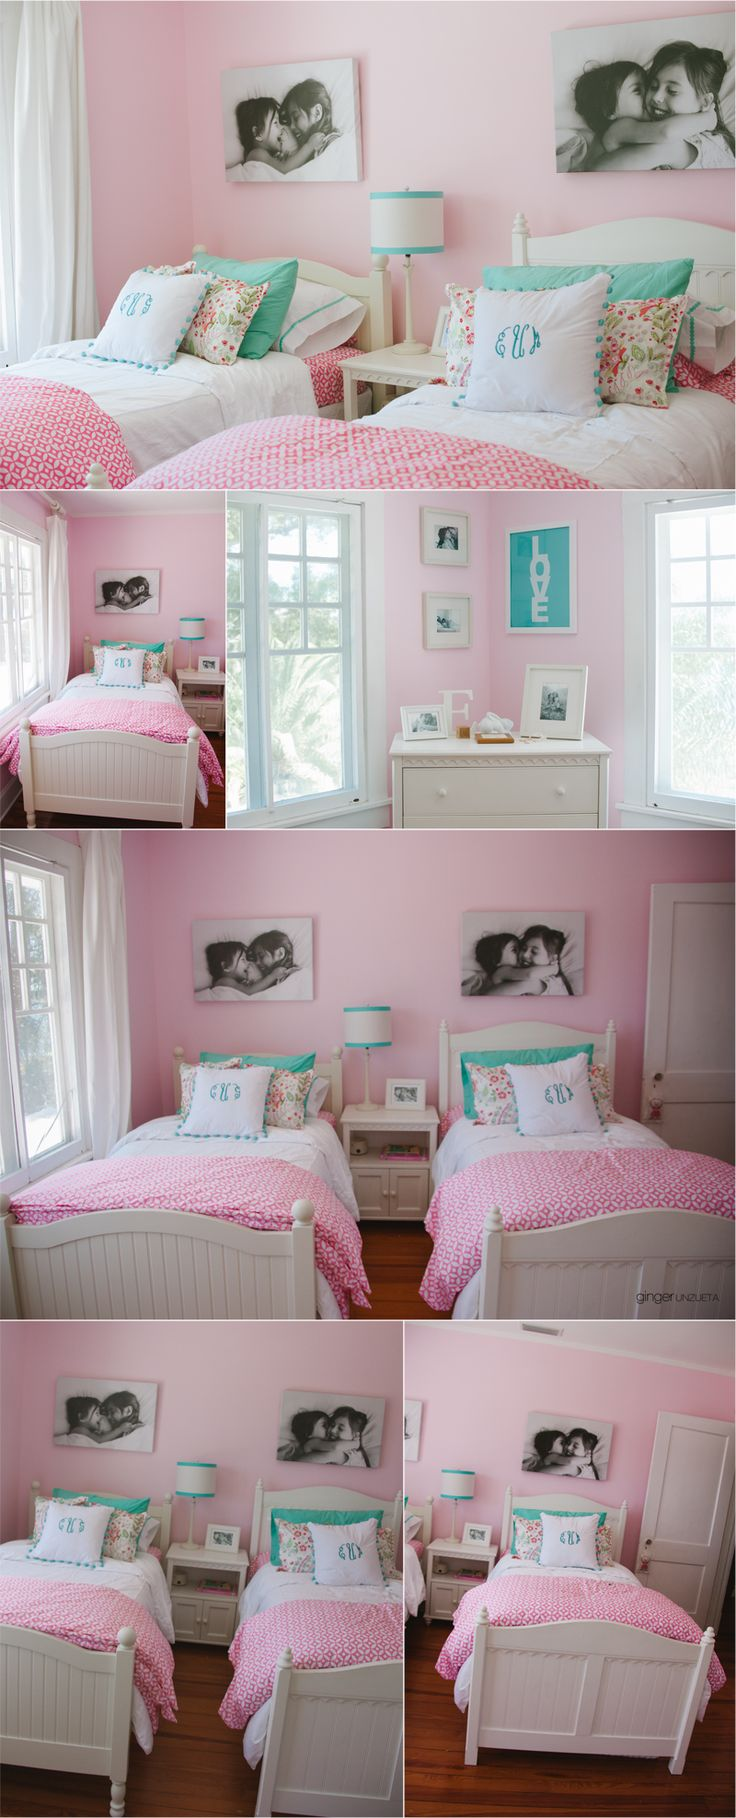 Such a cute shared girls room. Maybe if my sister and I had a room this cute there would have been less fights. Love this room!